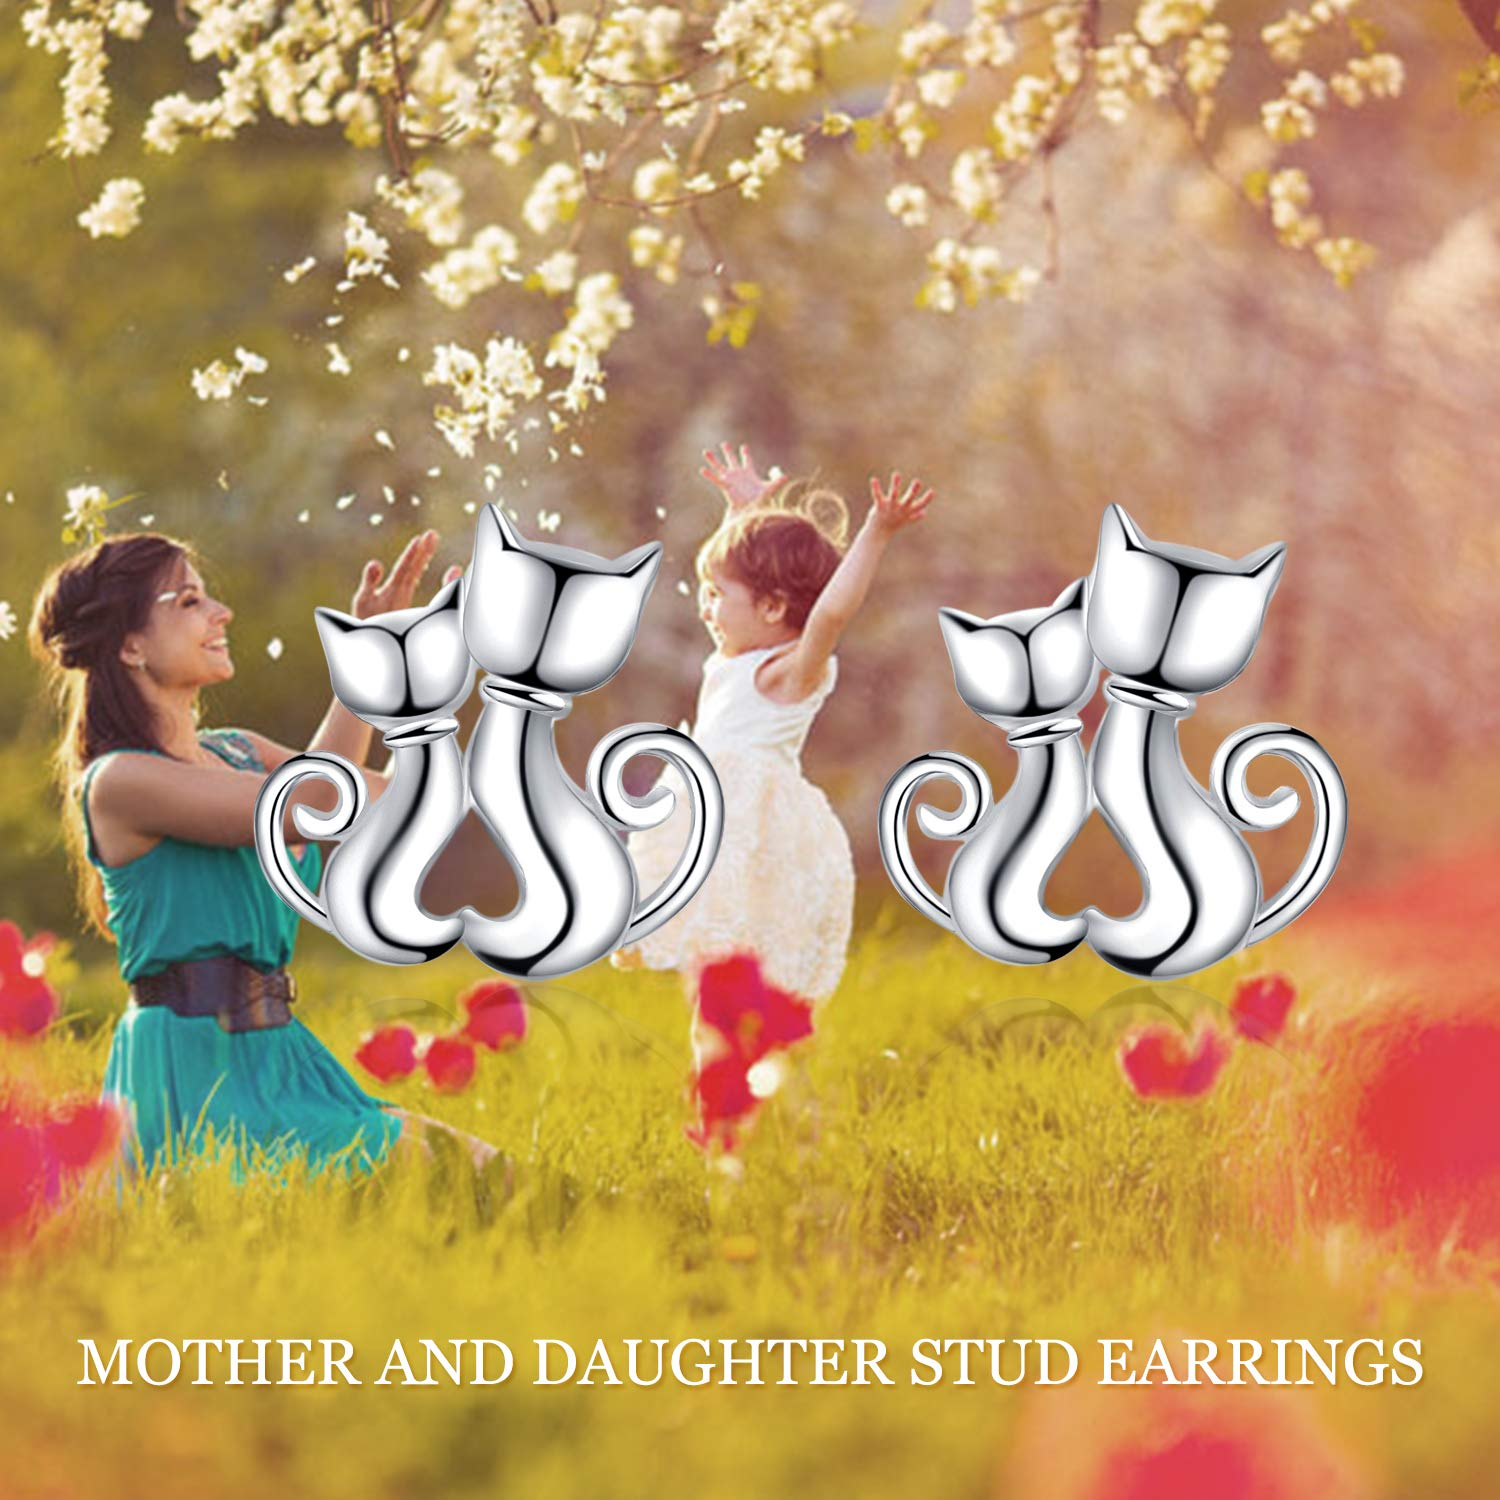 Mother and Daughter Cat Pendant Necklace Sterling Silver Cute Hypoallergenic Double Cat Jewelry for Women Girls Sisters PYE032 LUHE Cat Earrings,Cat Pendant Necklace,Cat Brooch Sterling Silver Cute Hypoallergenic Double Cat Jewelry for Women Girls Sisters